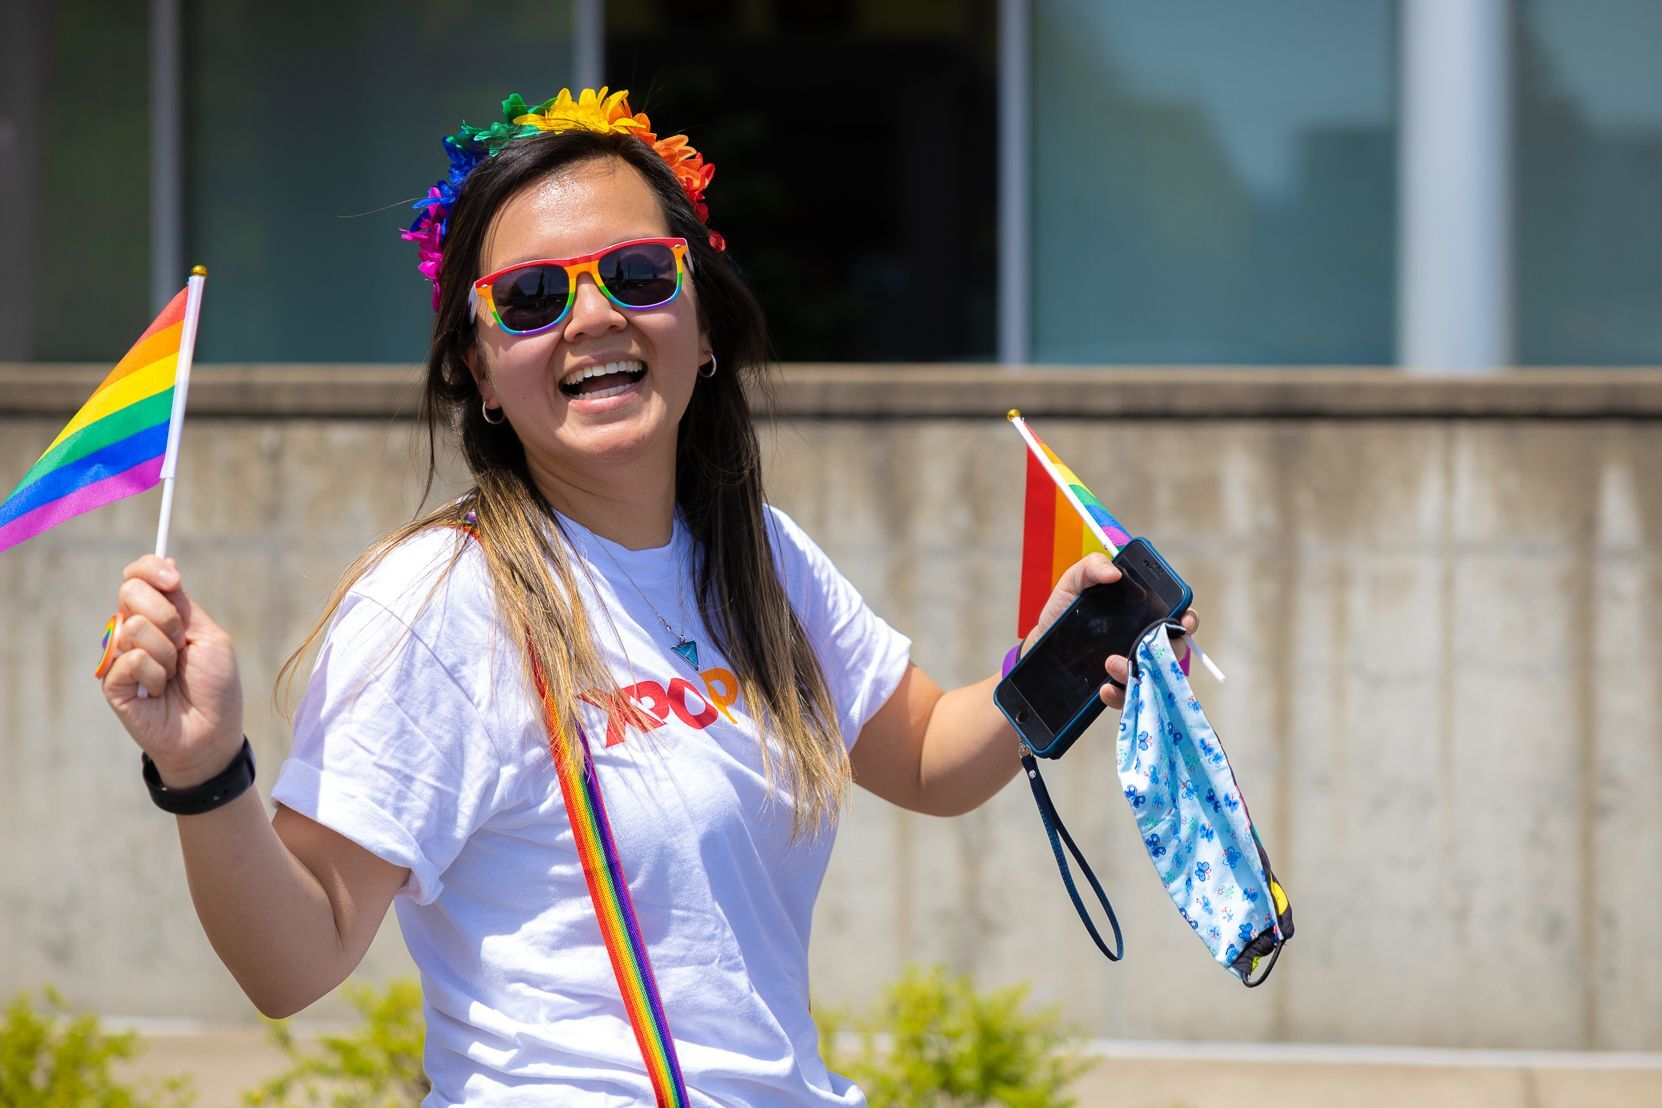 XPO employee holding rainbow flags